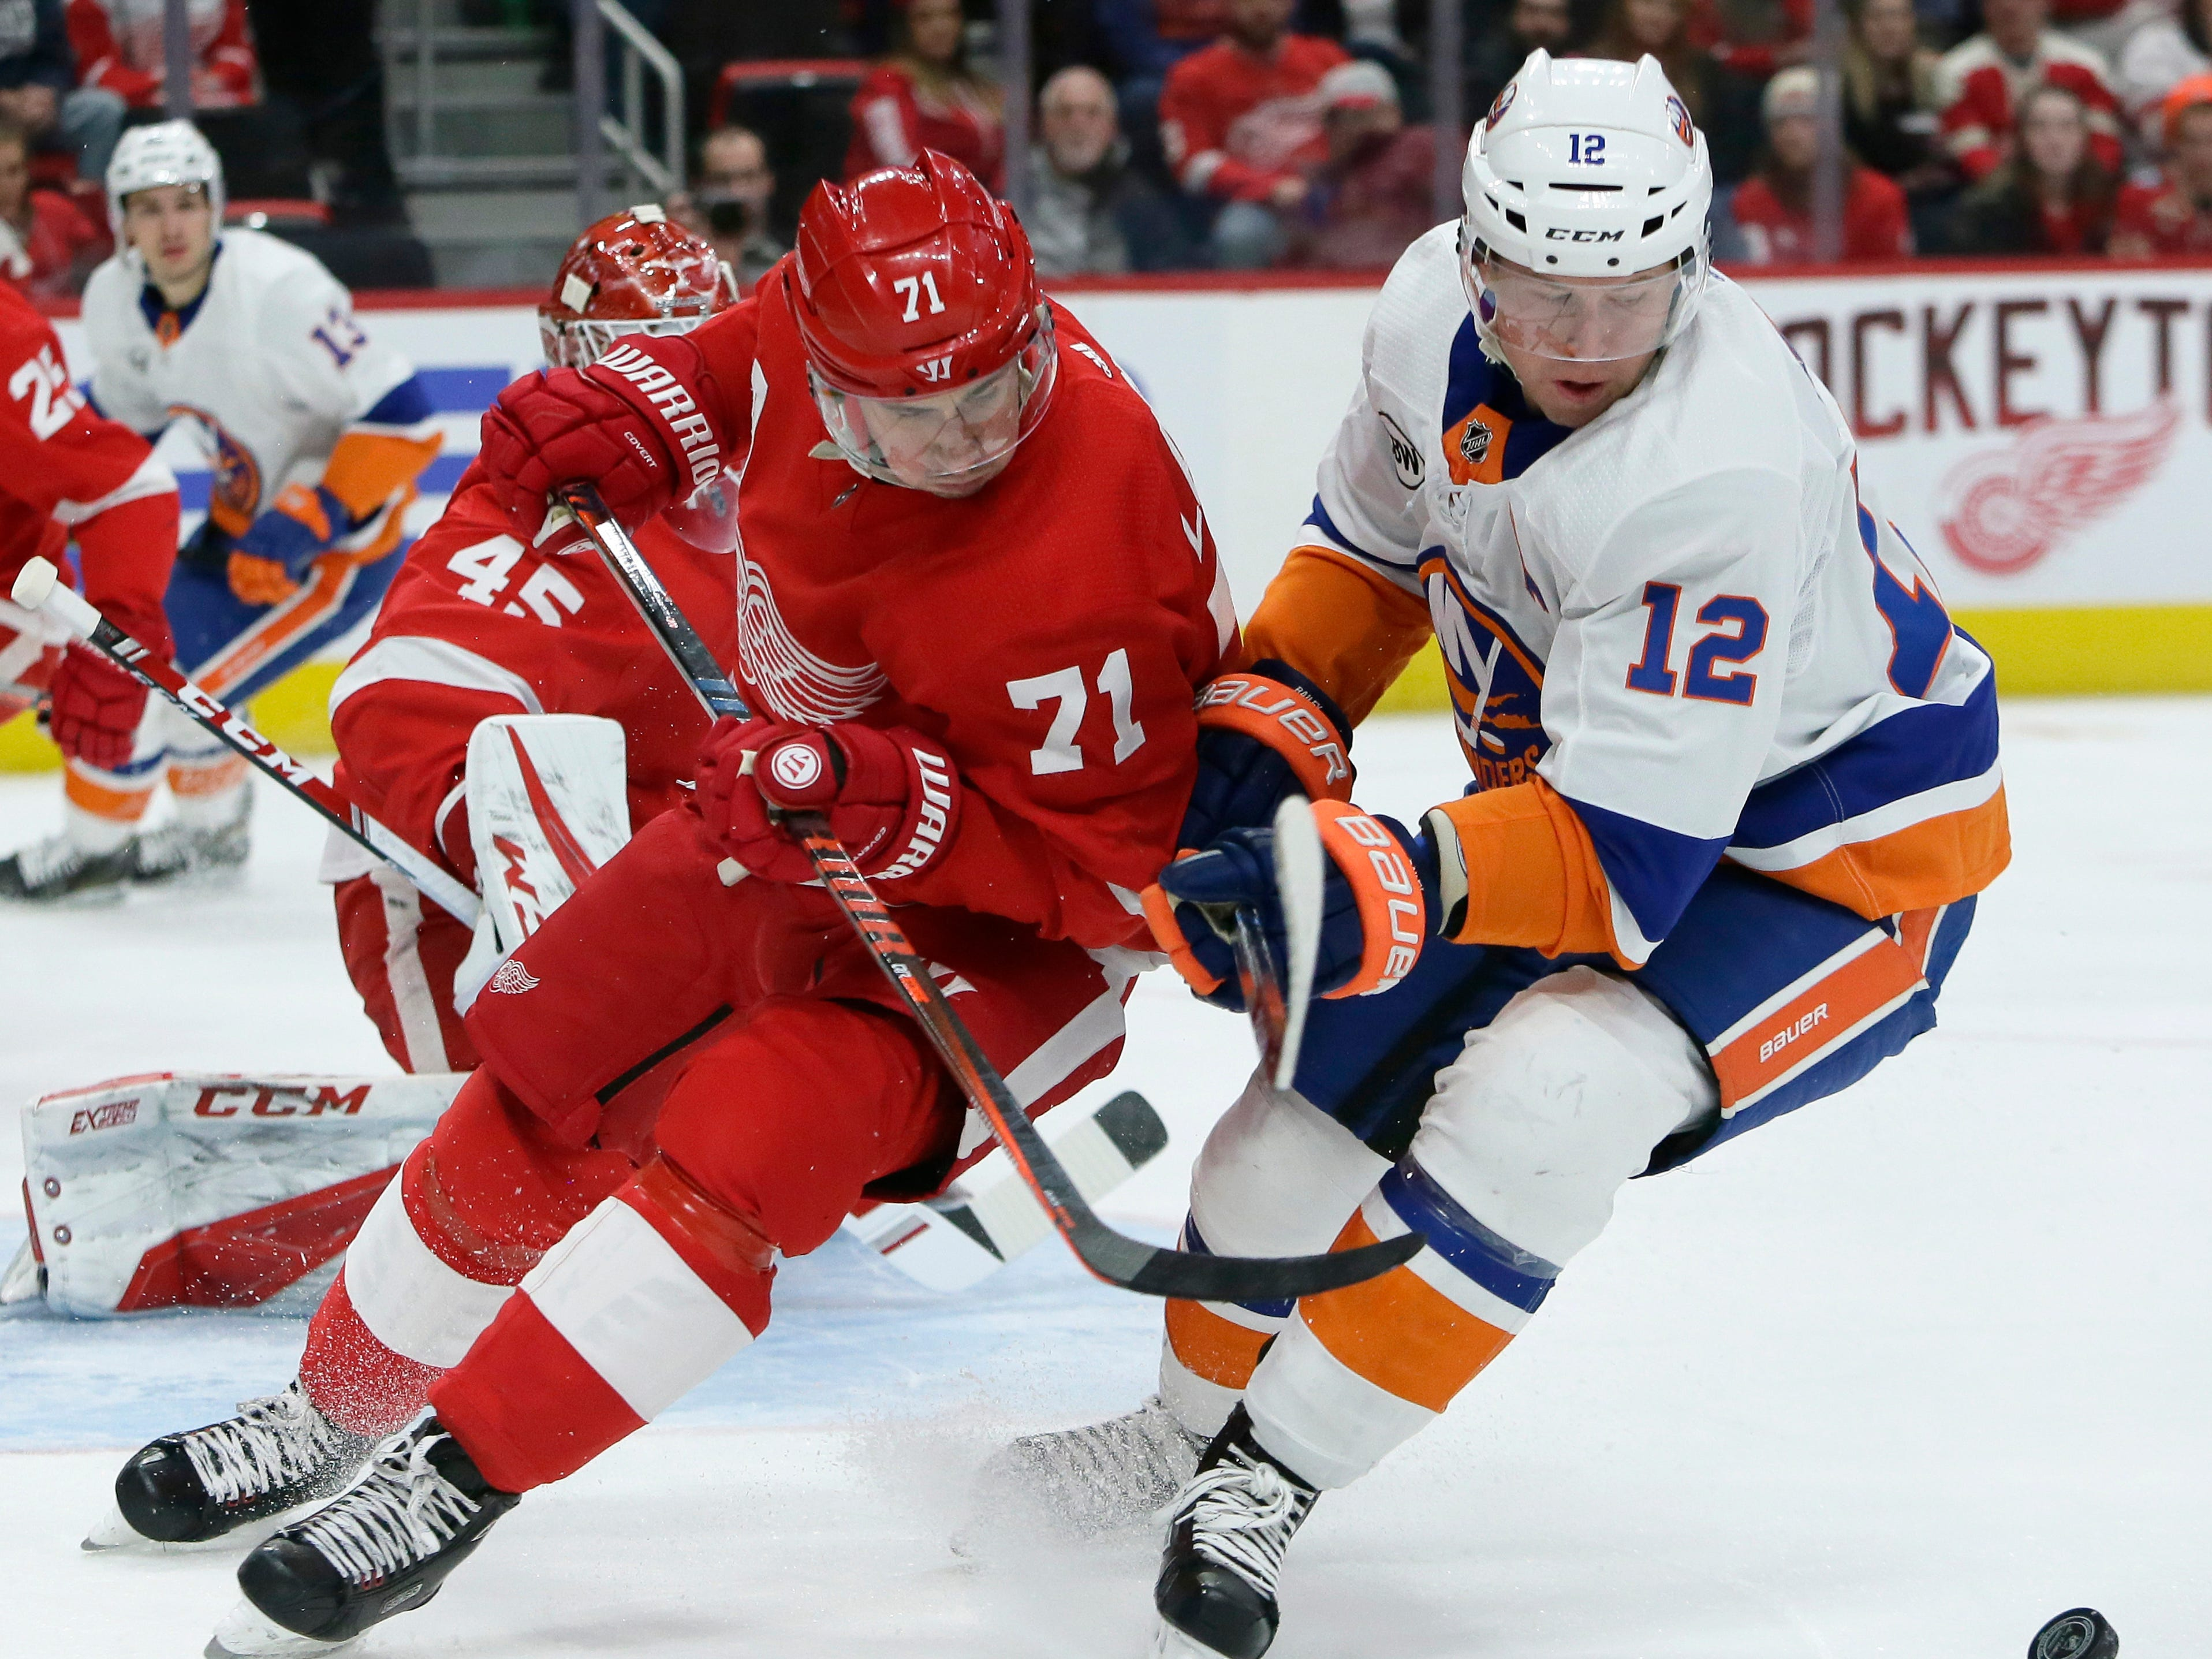 New York Islanders right wing Josh Bailey (12) tries to push Detroit Red Wings center Dylan Larkin (71) off the puck during the first period.